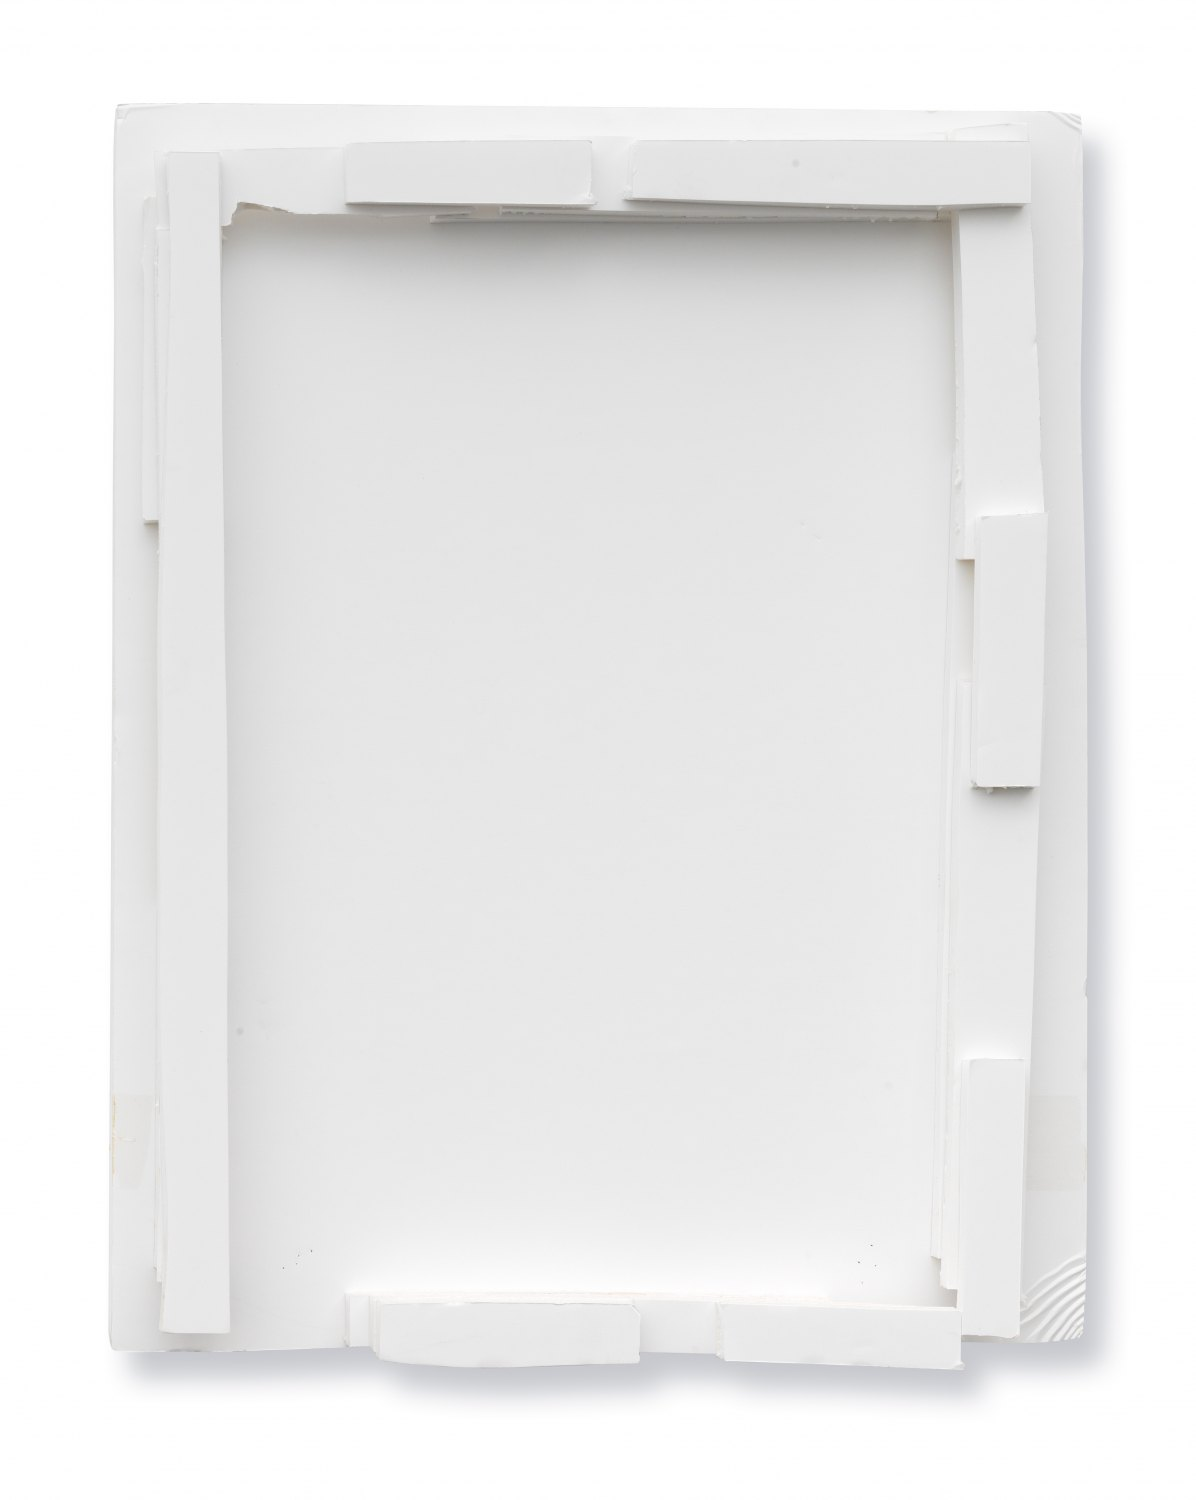 Gedi Sibony  It Just Came to You, 2011    Foam core, 53.3 × 66 cm